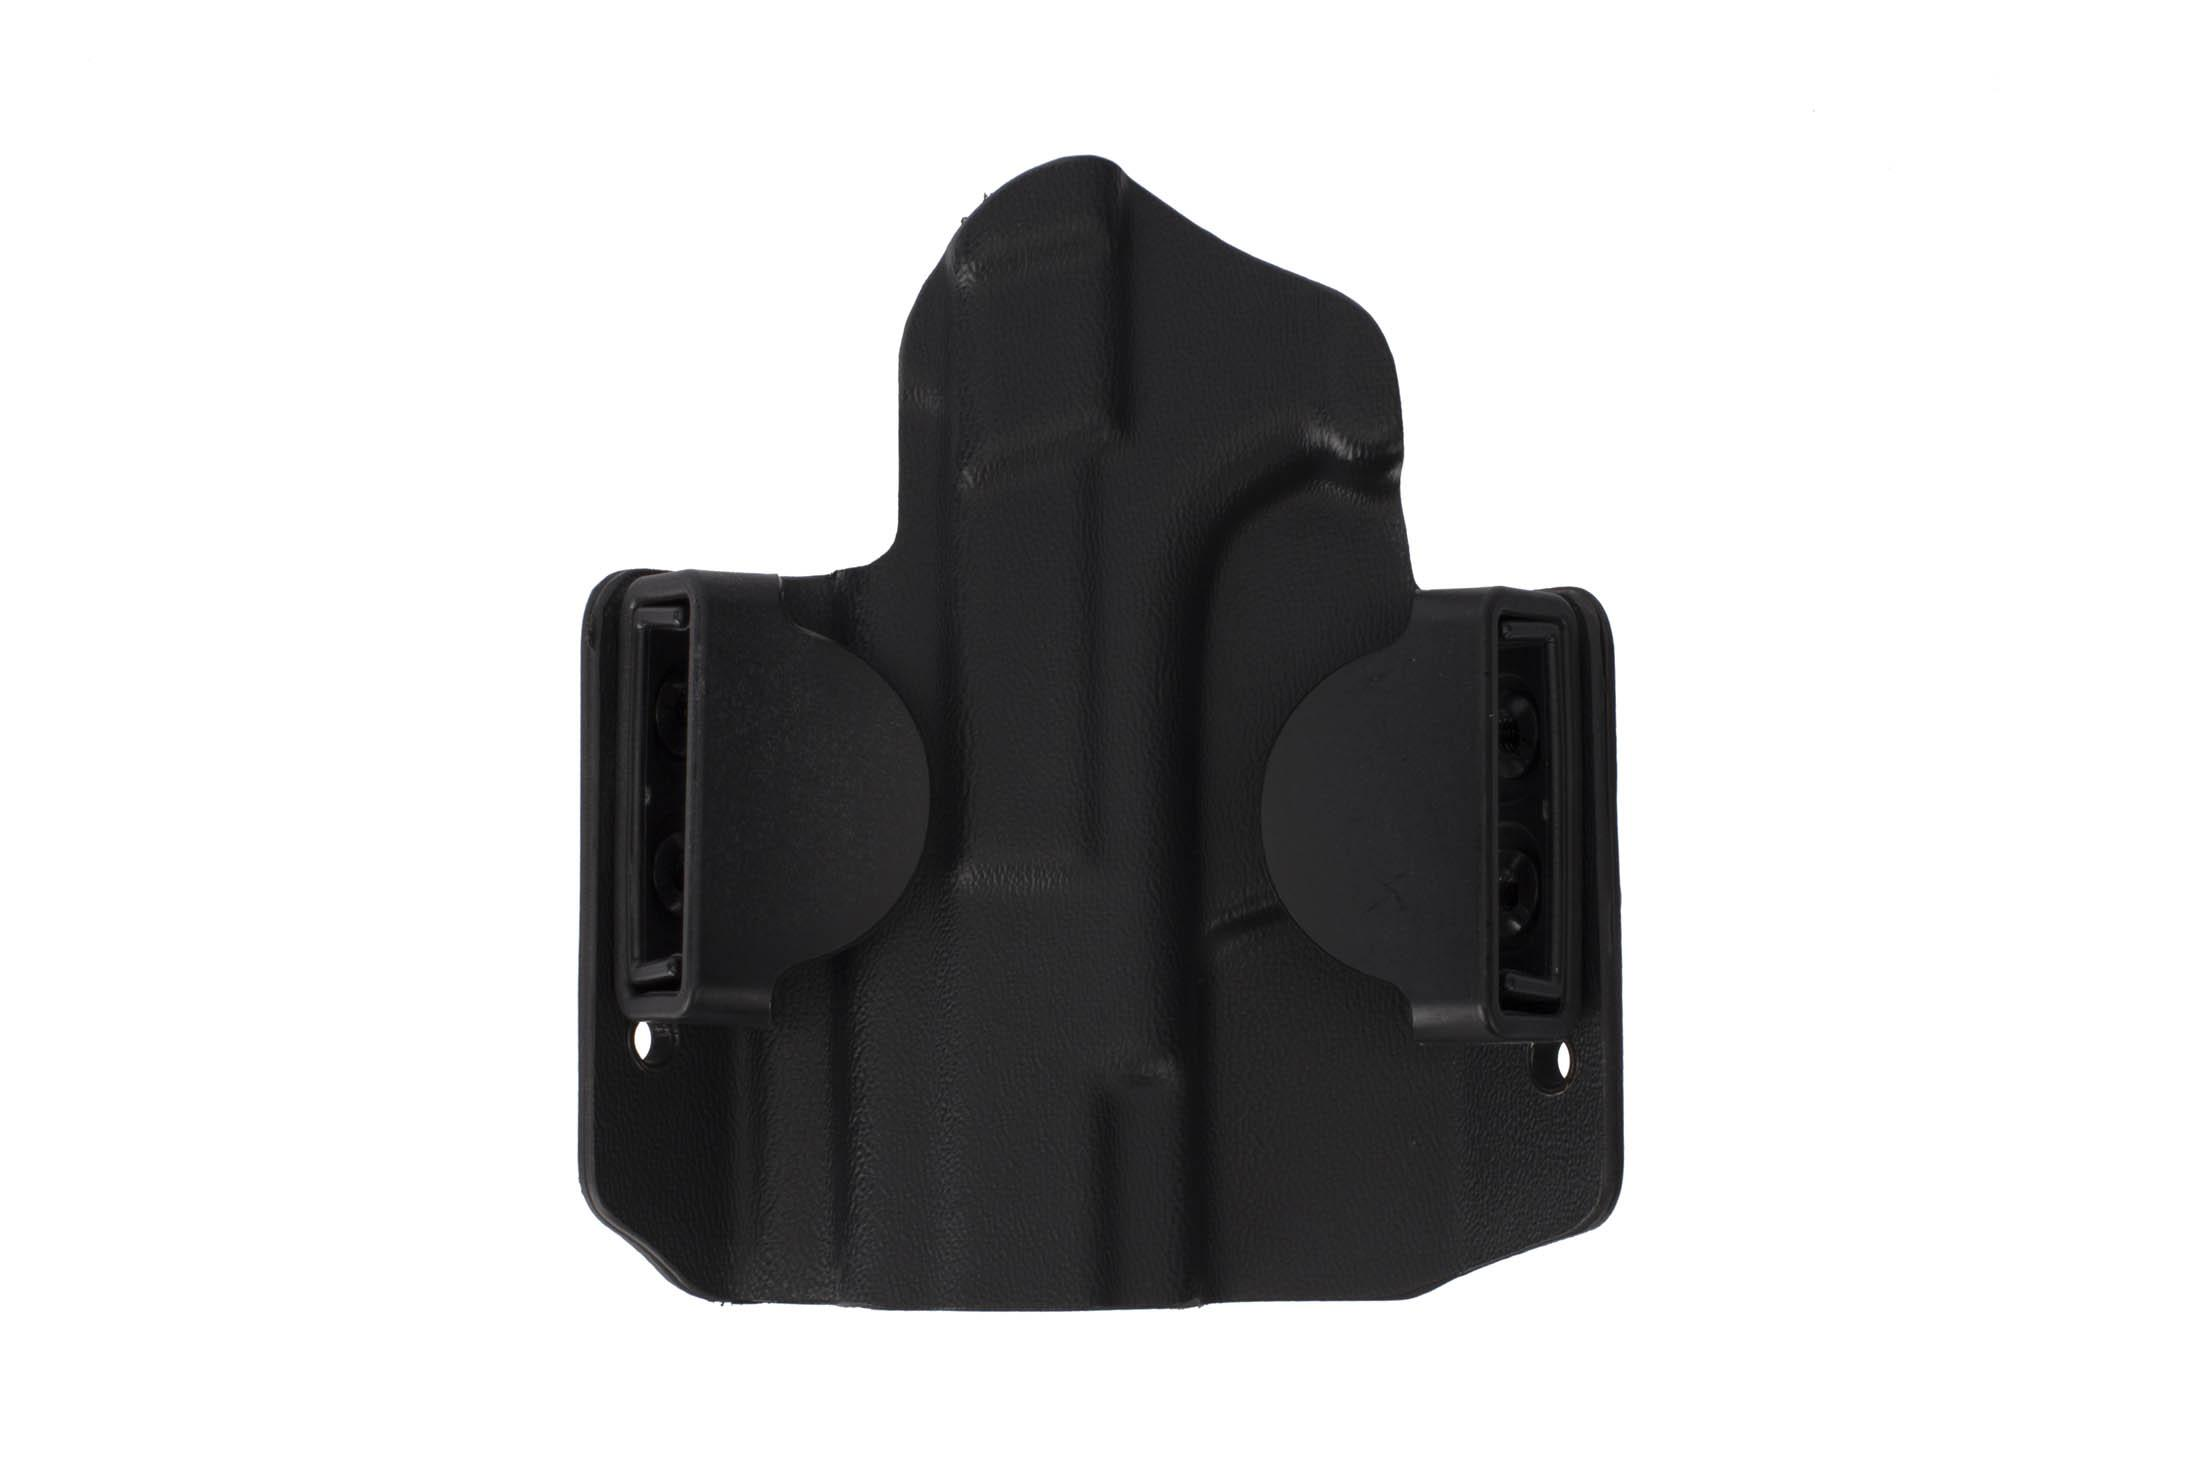 HSGI's outside the waistband black gun holster for compact Smith & Wesson handguns can configured for 1.5in or 1.75in belts